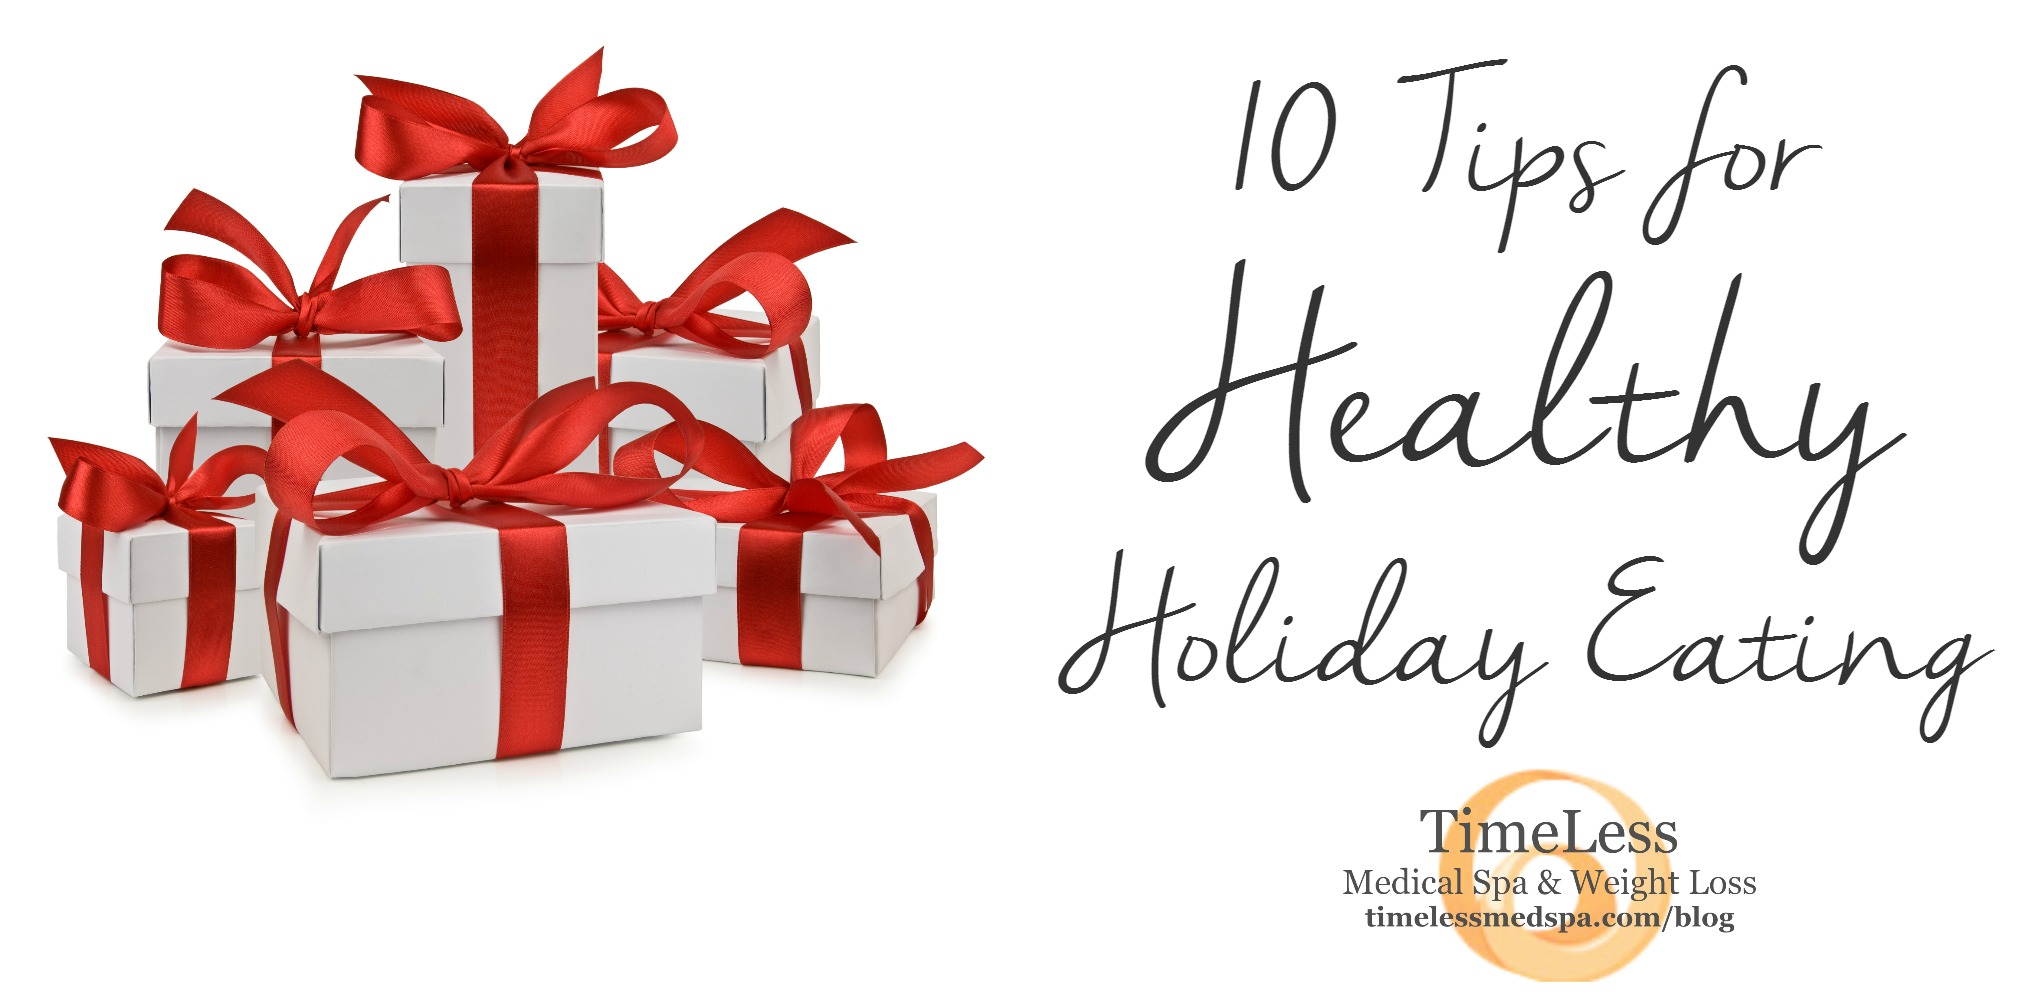 10 Tips for Healthy Holiday Eating